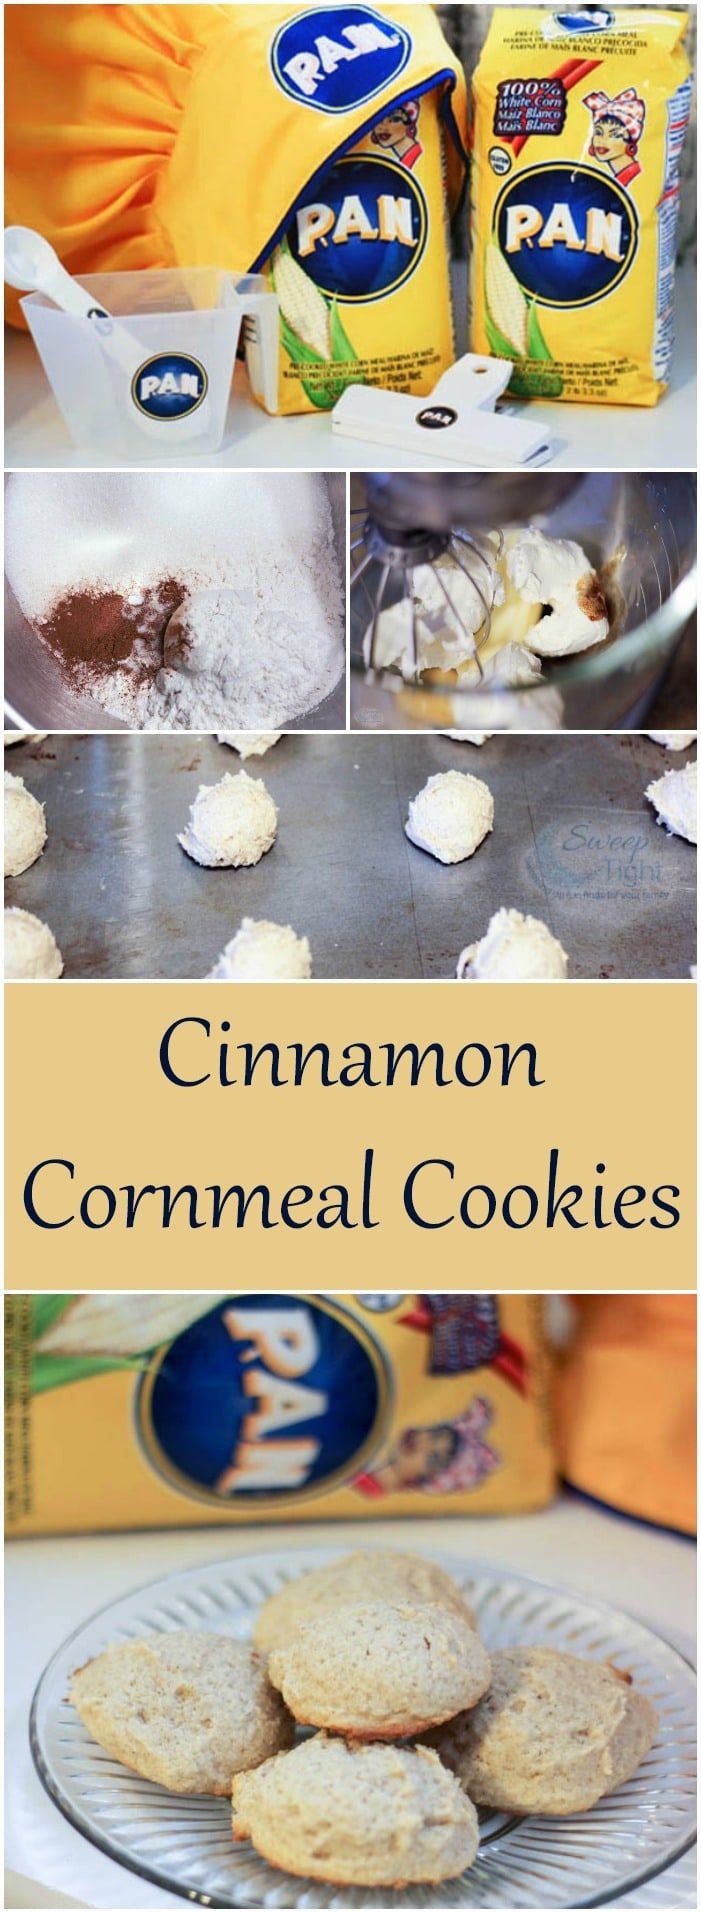 Cinnamon Cornmeal Cookies Recipe #PANFan